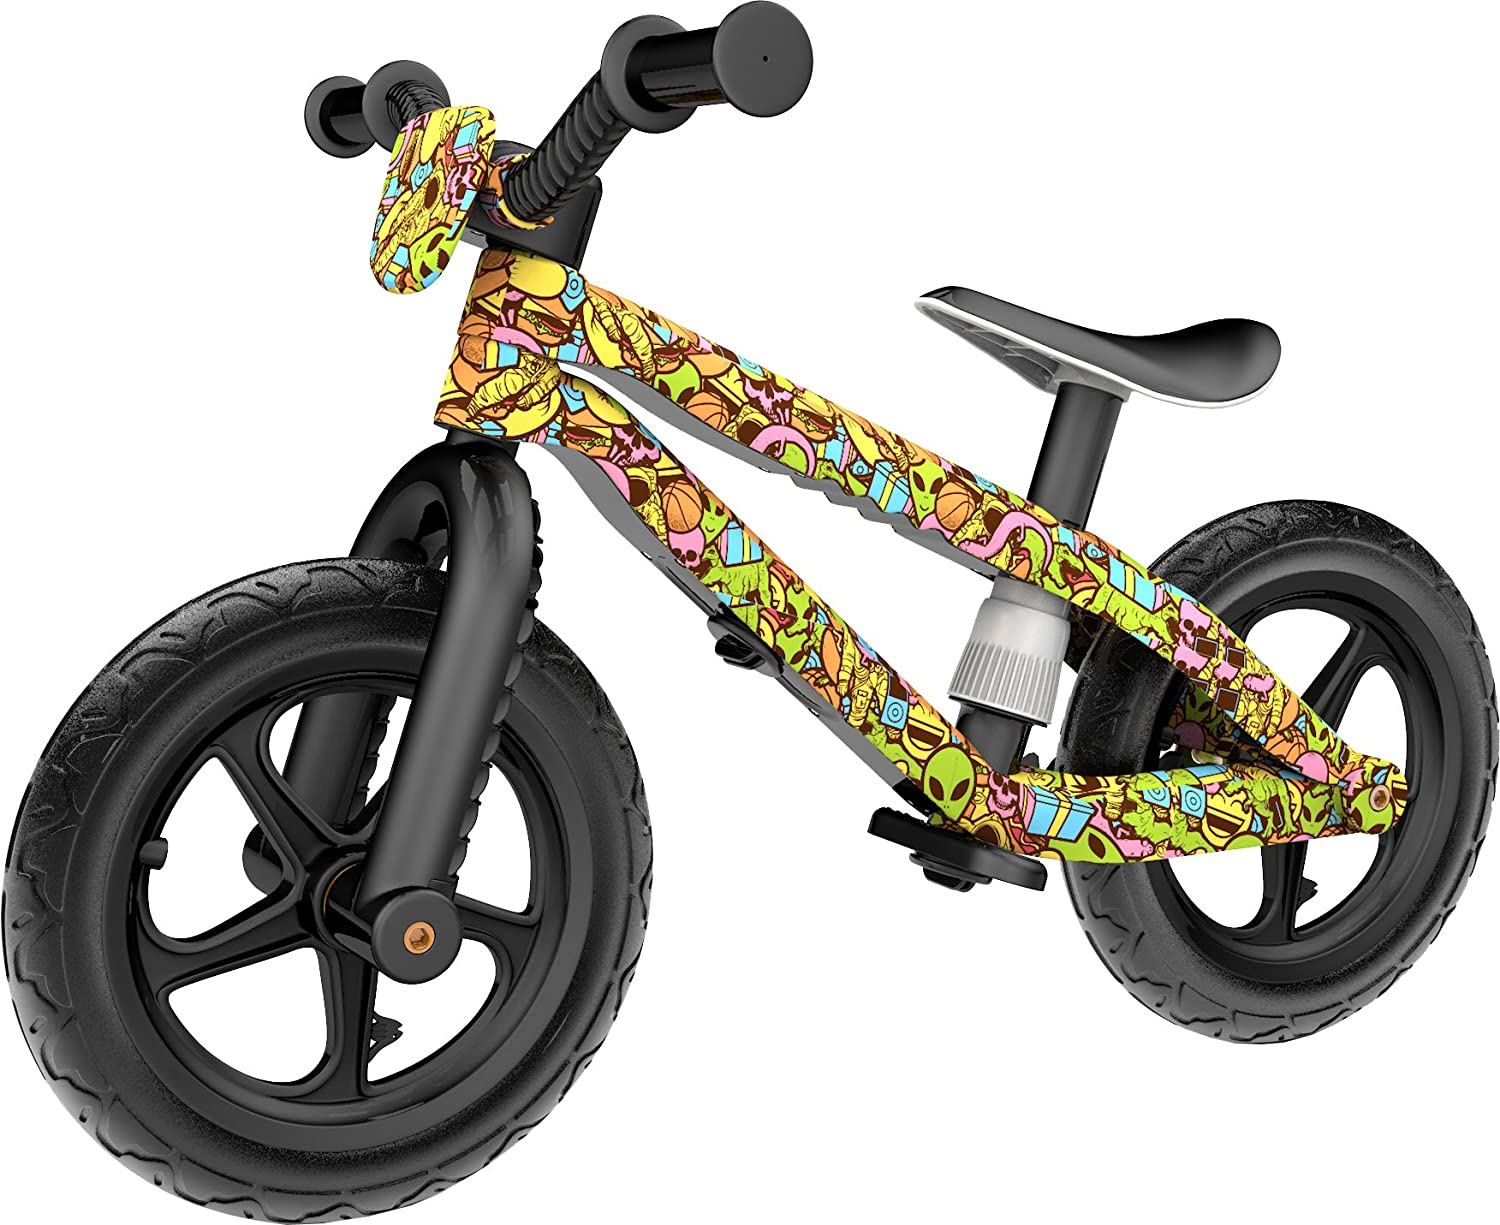 Chillafish BMXie-RS: BMX Balance Bike with Airless RubberSkin Tires, Blue (Motion of The Ocean) The Chillafish Company NV CPMX01BLU-RS